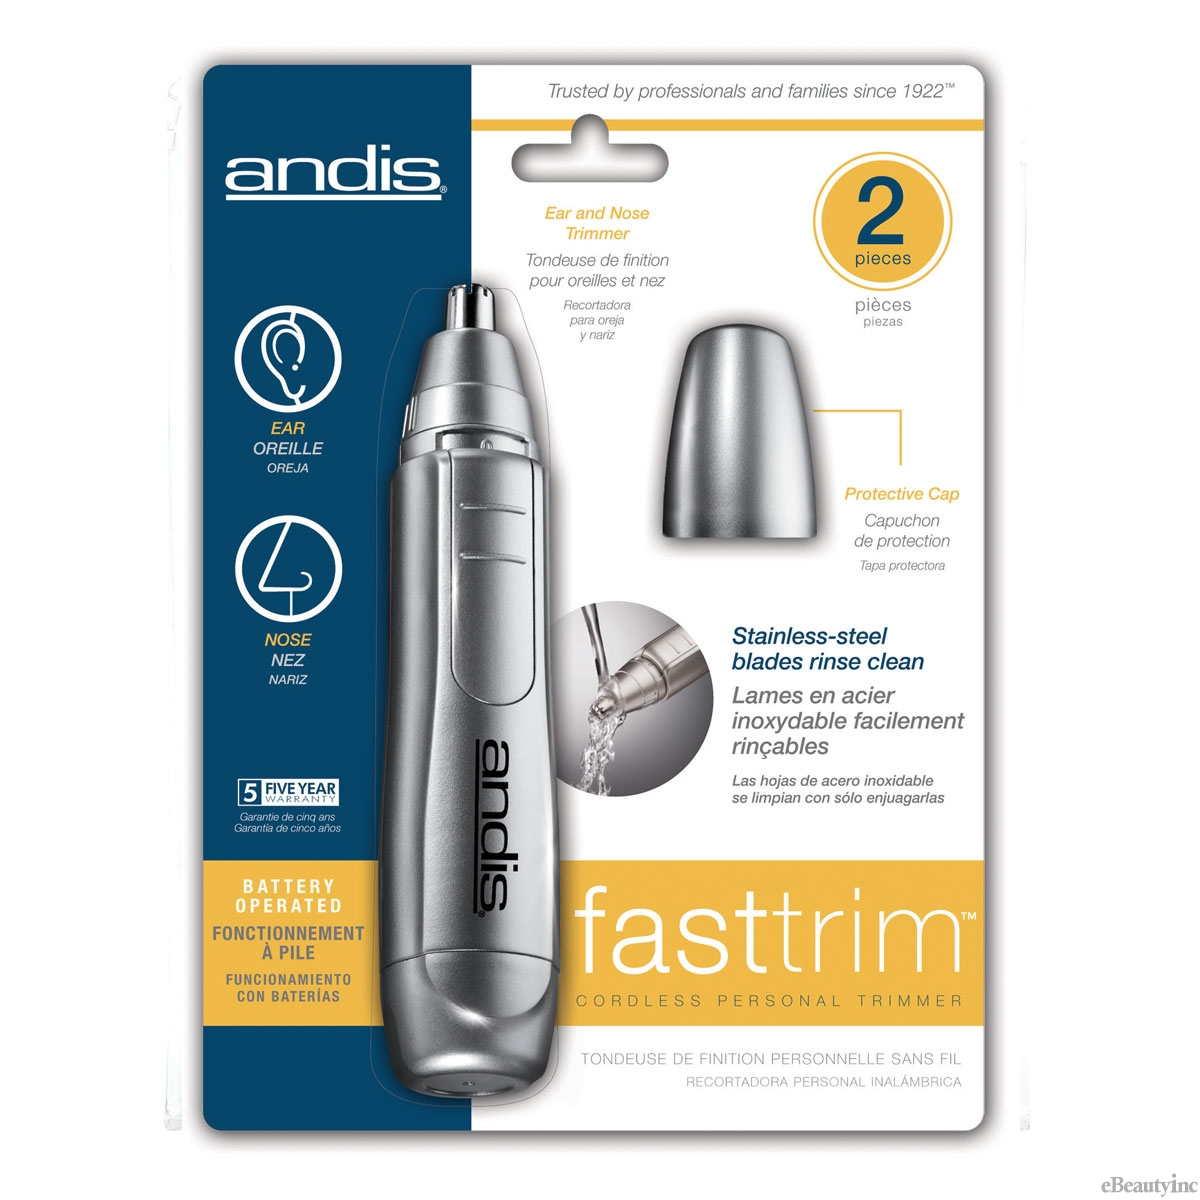 Andis Fast Trim Personal Trimmer for Nose Ears and Eyebrows #13430